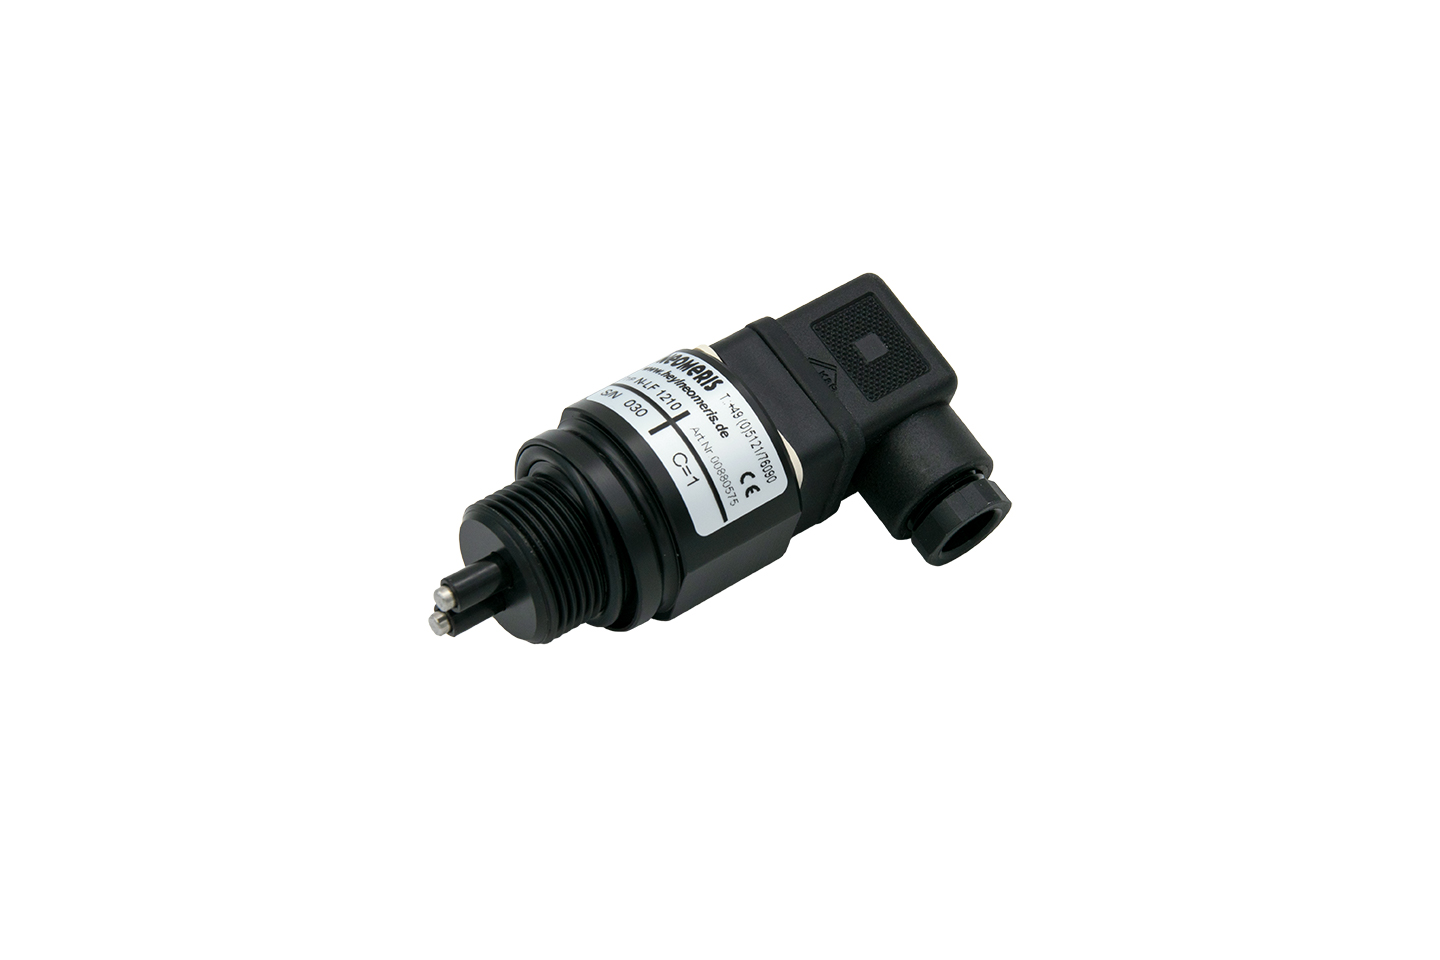 N-LF3410 conductivity measuring cell with PT100, screw-in cell and solenoid valve connector